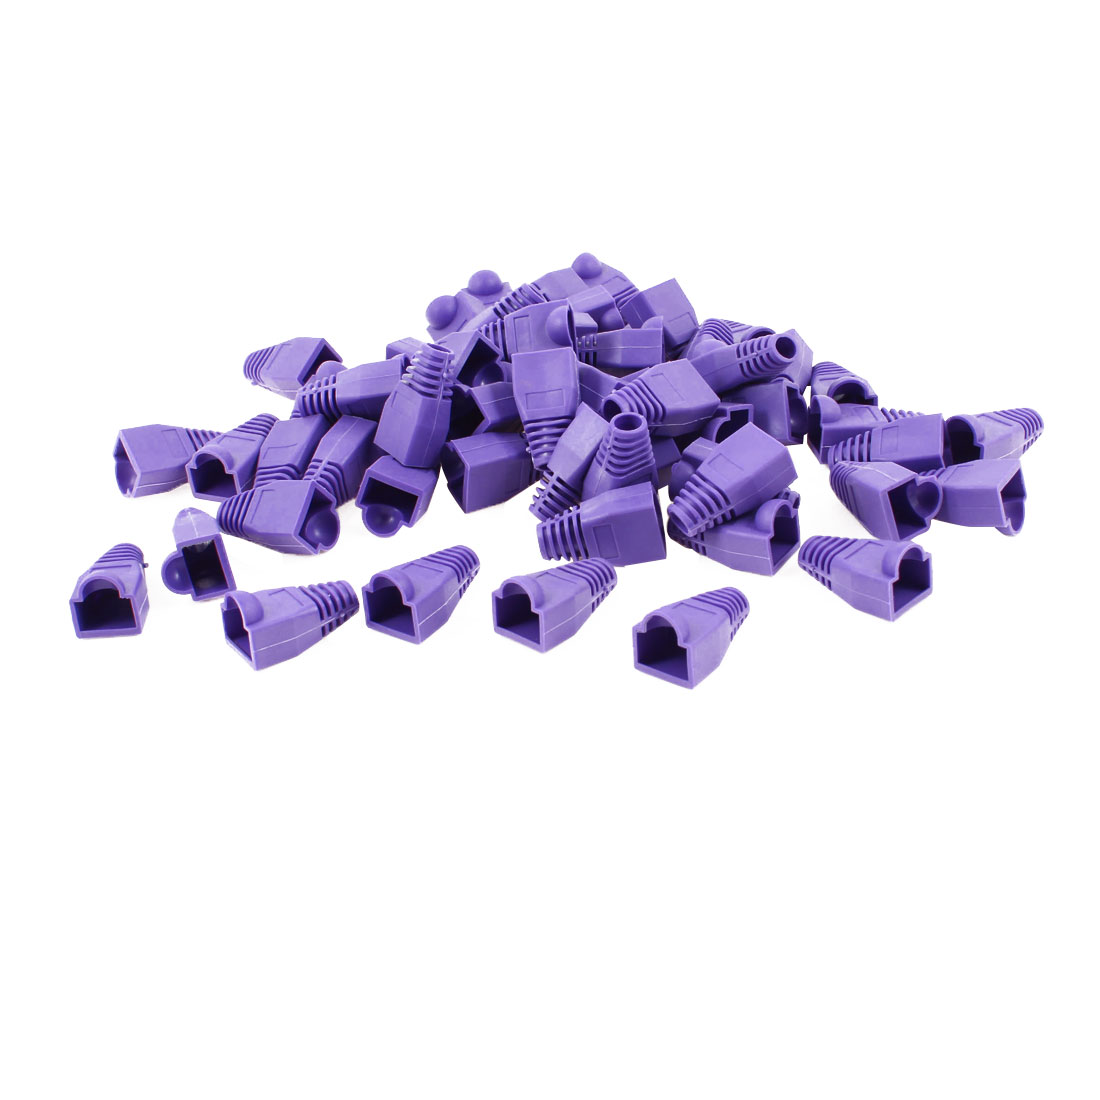 60 Pcs Purple Soft Plastic Hood Cover Boots for RJ45 Connector